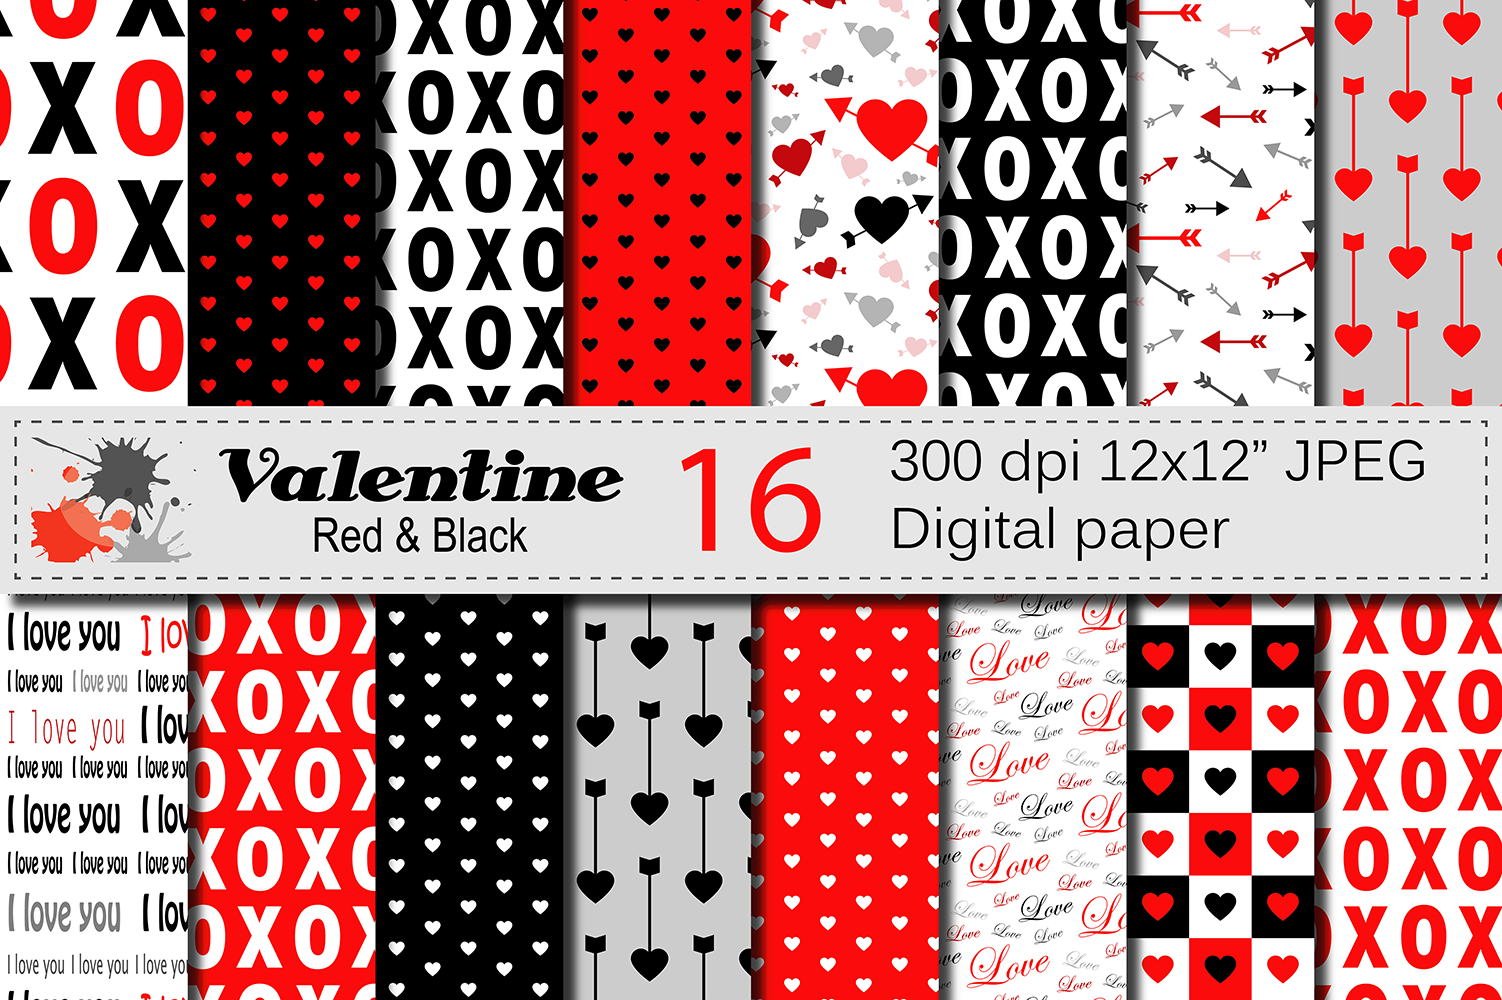 Red and Black Valentine Digital Paper Pack with Hearts and Arrows / Valentine Backgrounds Graphic Backgrounds By VR Digital Design